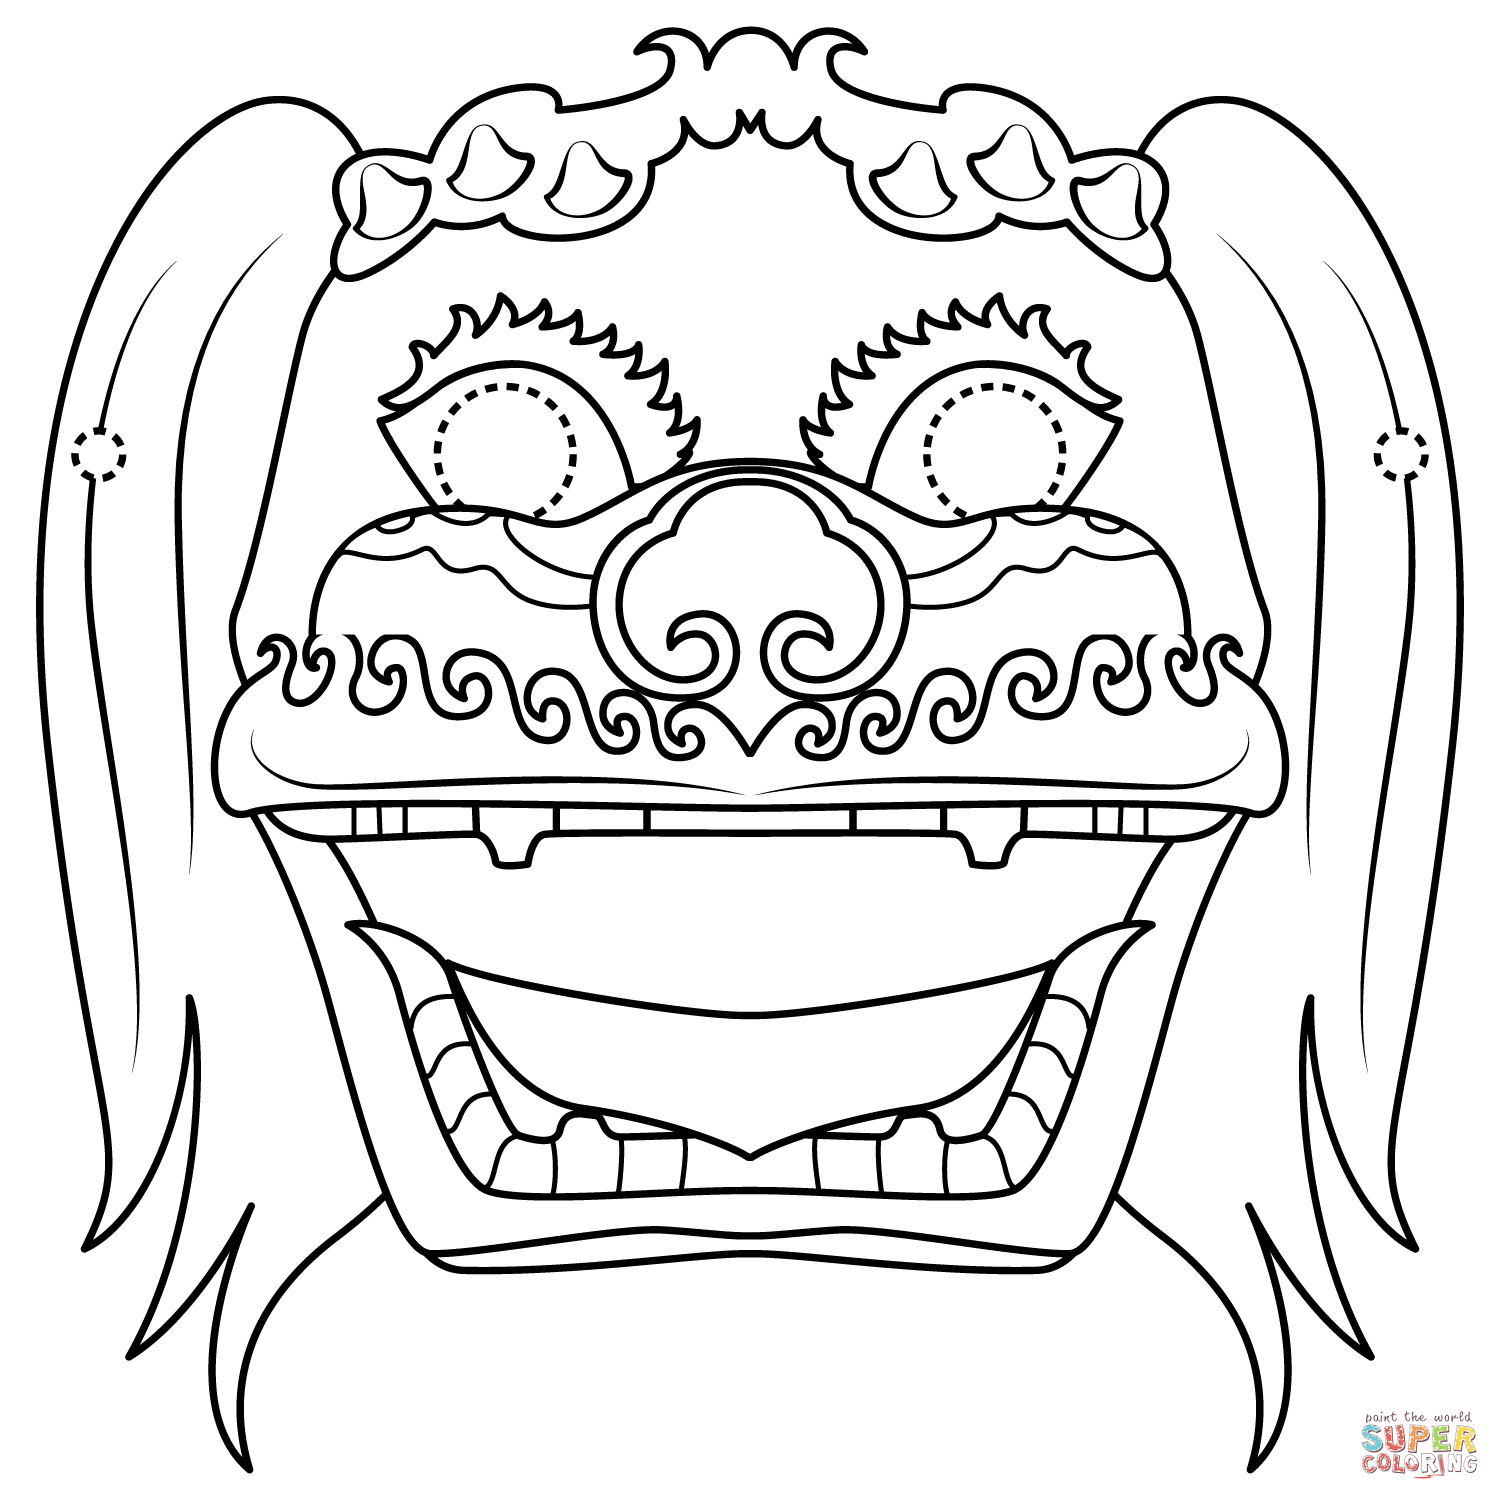 lion mask coloring page chinese lion dance mask coloring page free printable lion page coloring mask